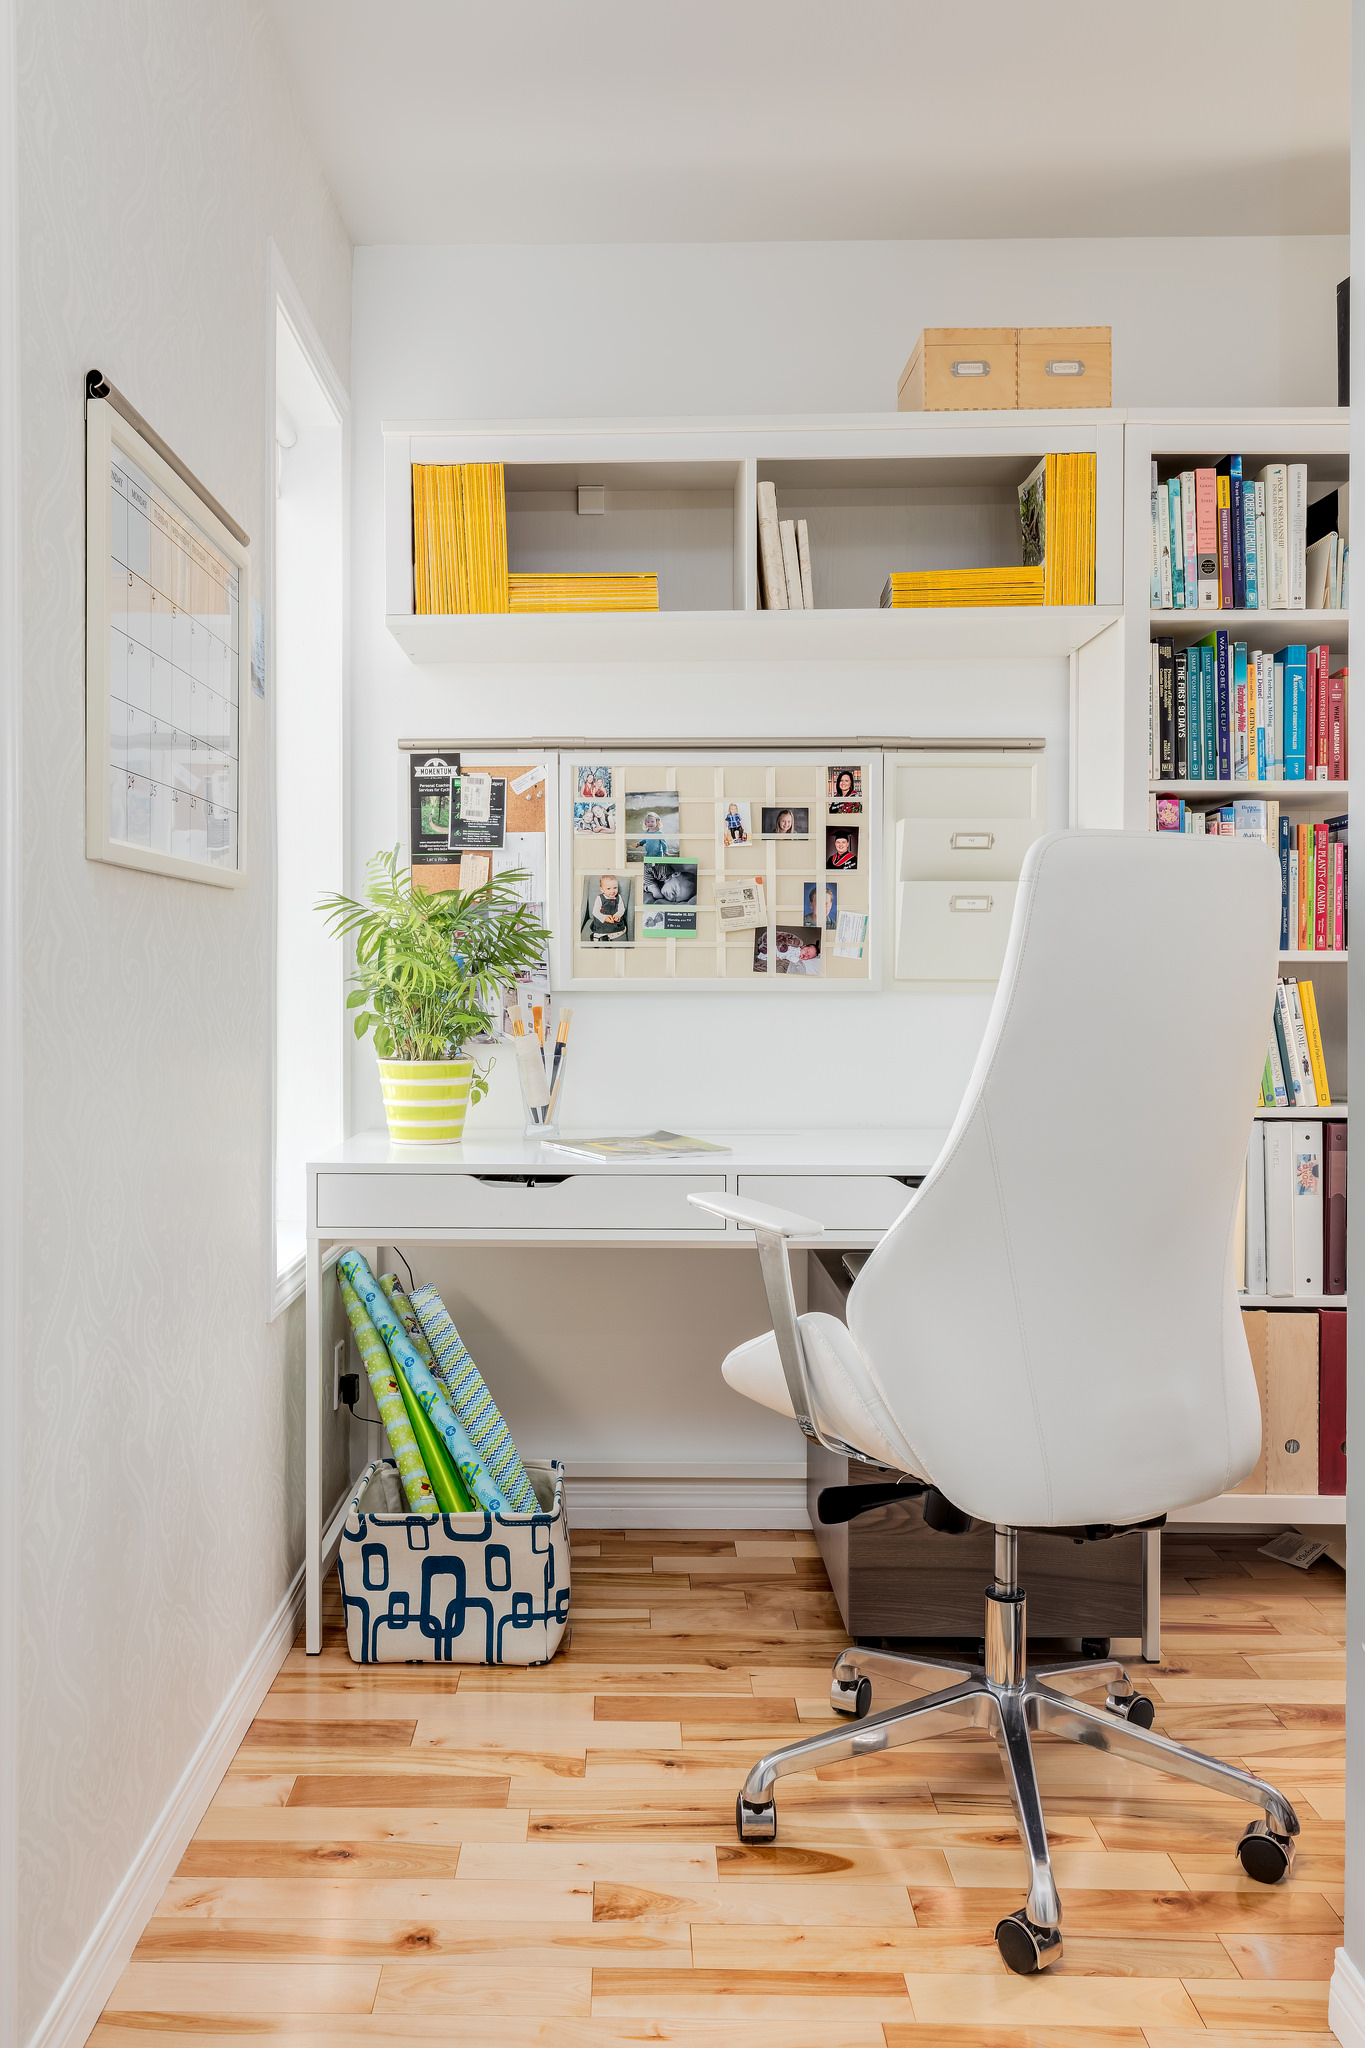 Bright white work area with a rolling white leather office chair, hardwood floors, modern desk and built-in bookshelf surraound, - a great place to work.